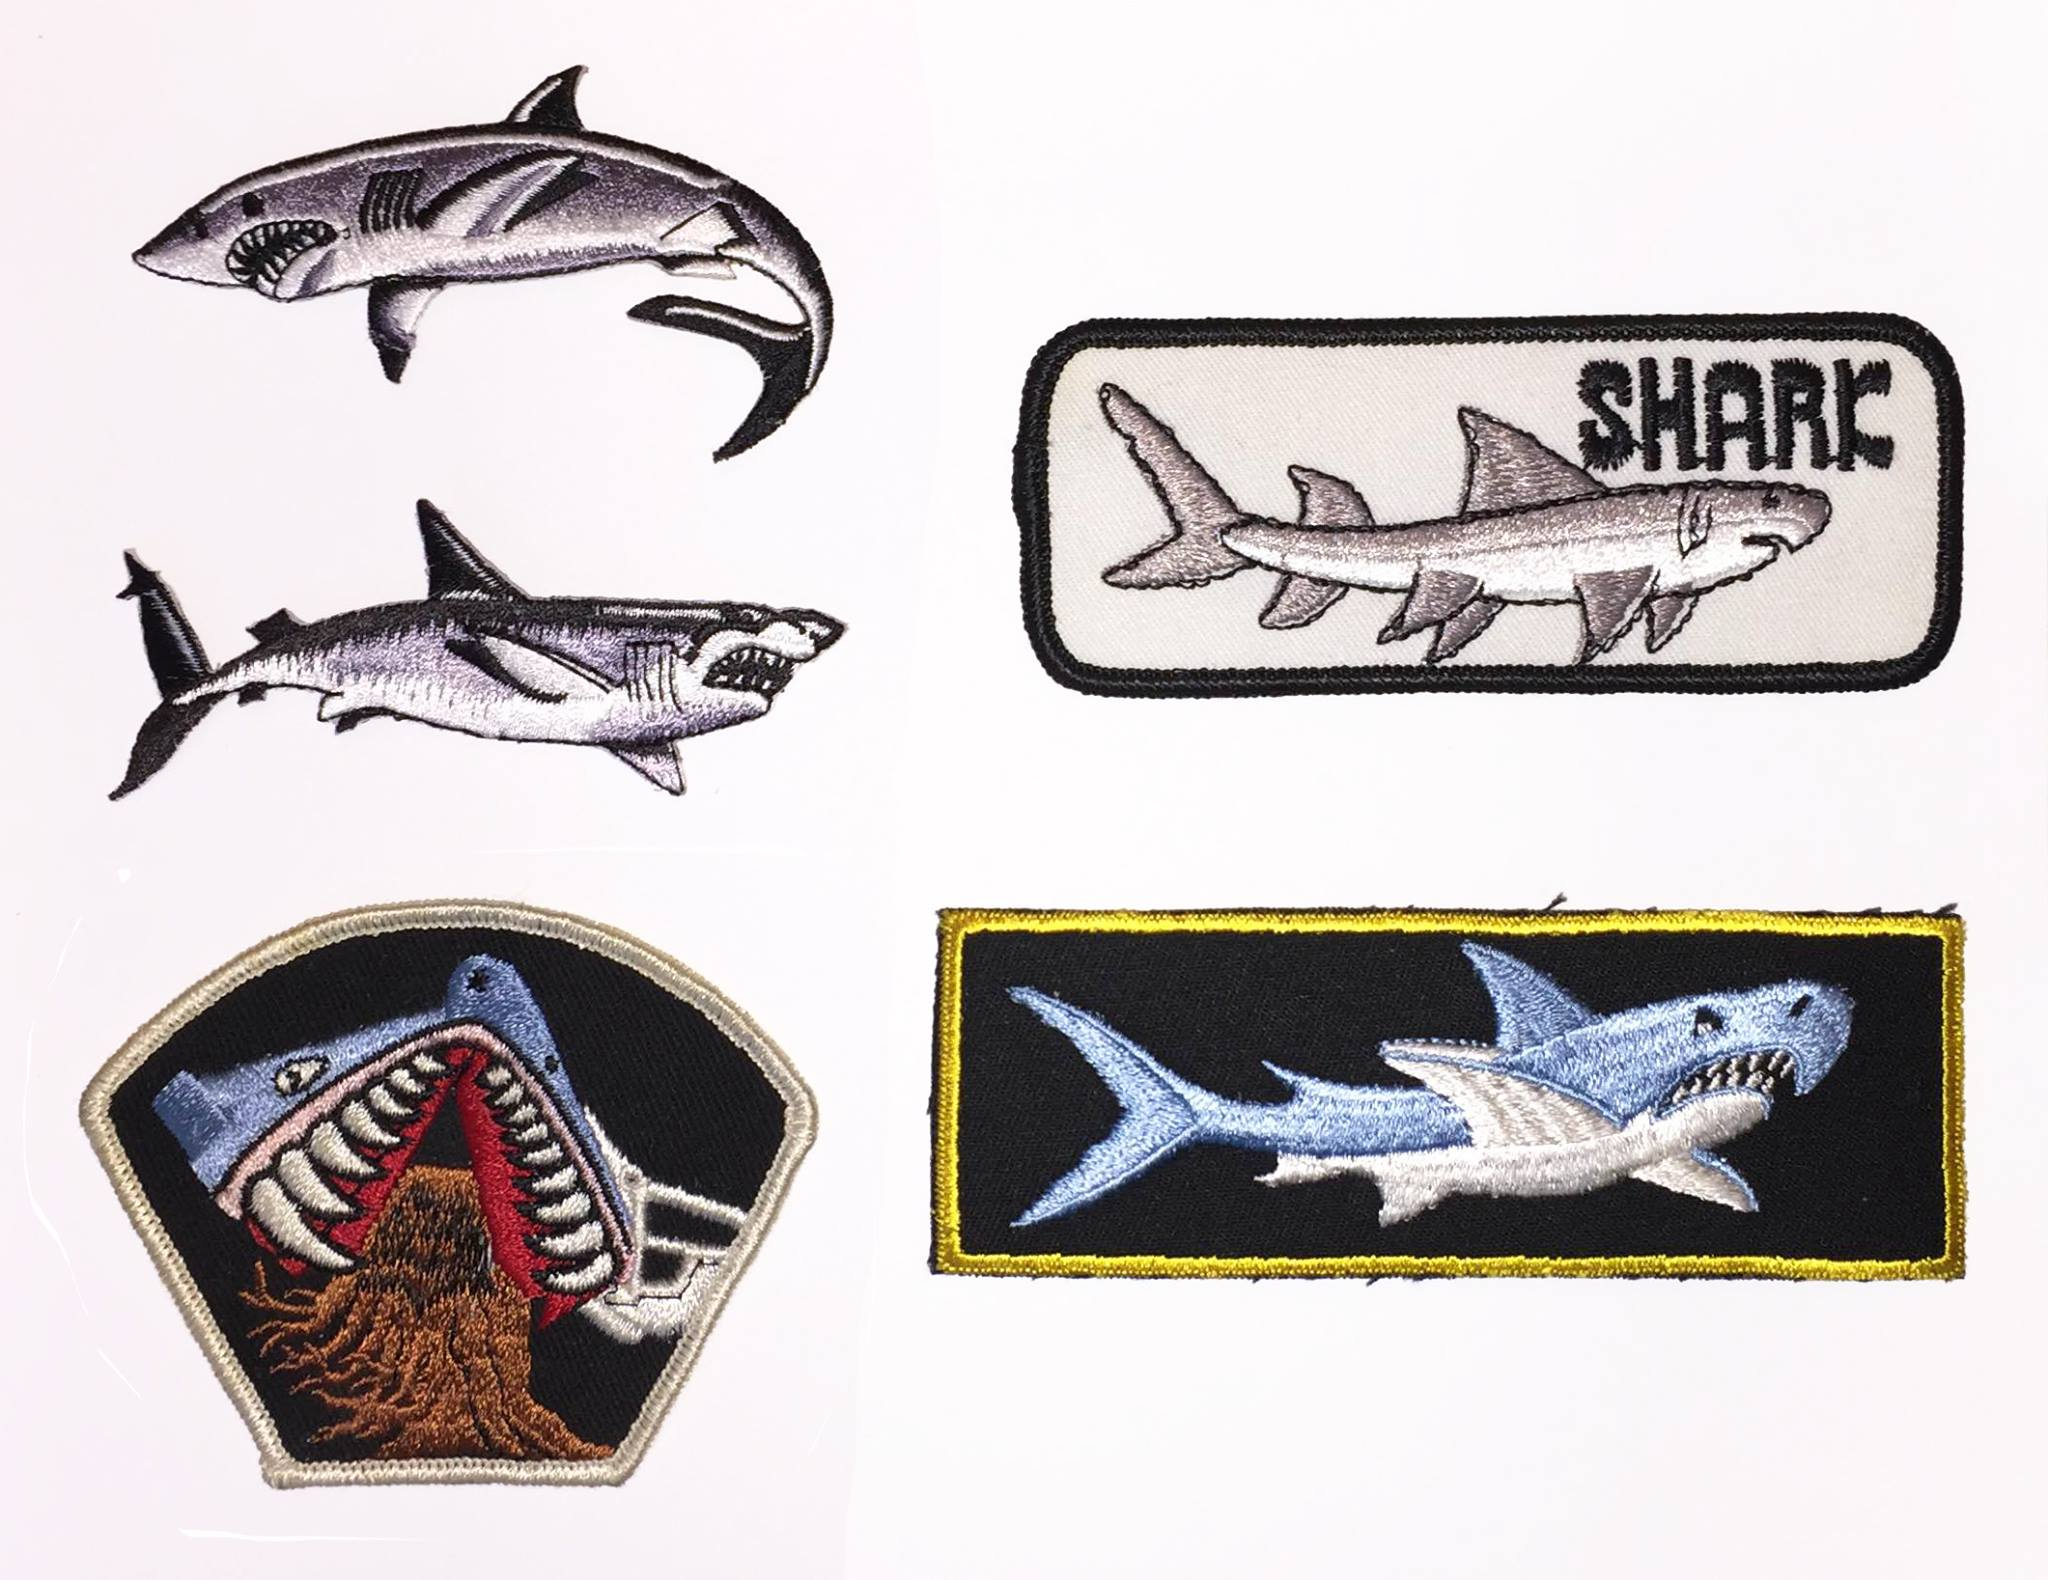 Shark patches from Todd Butler